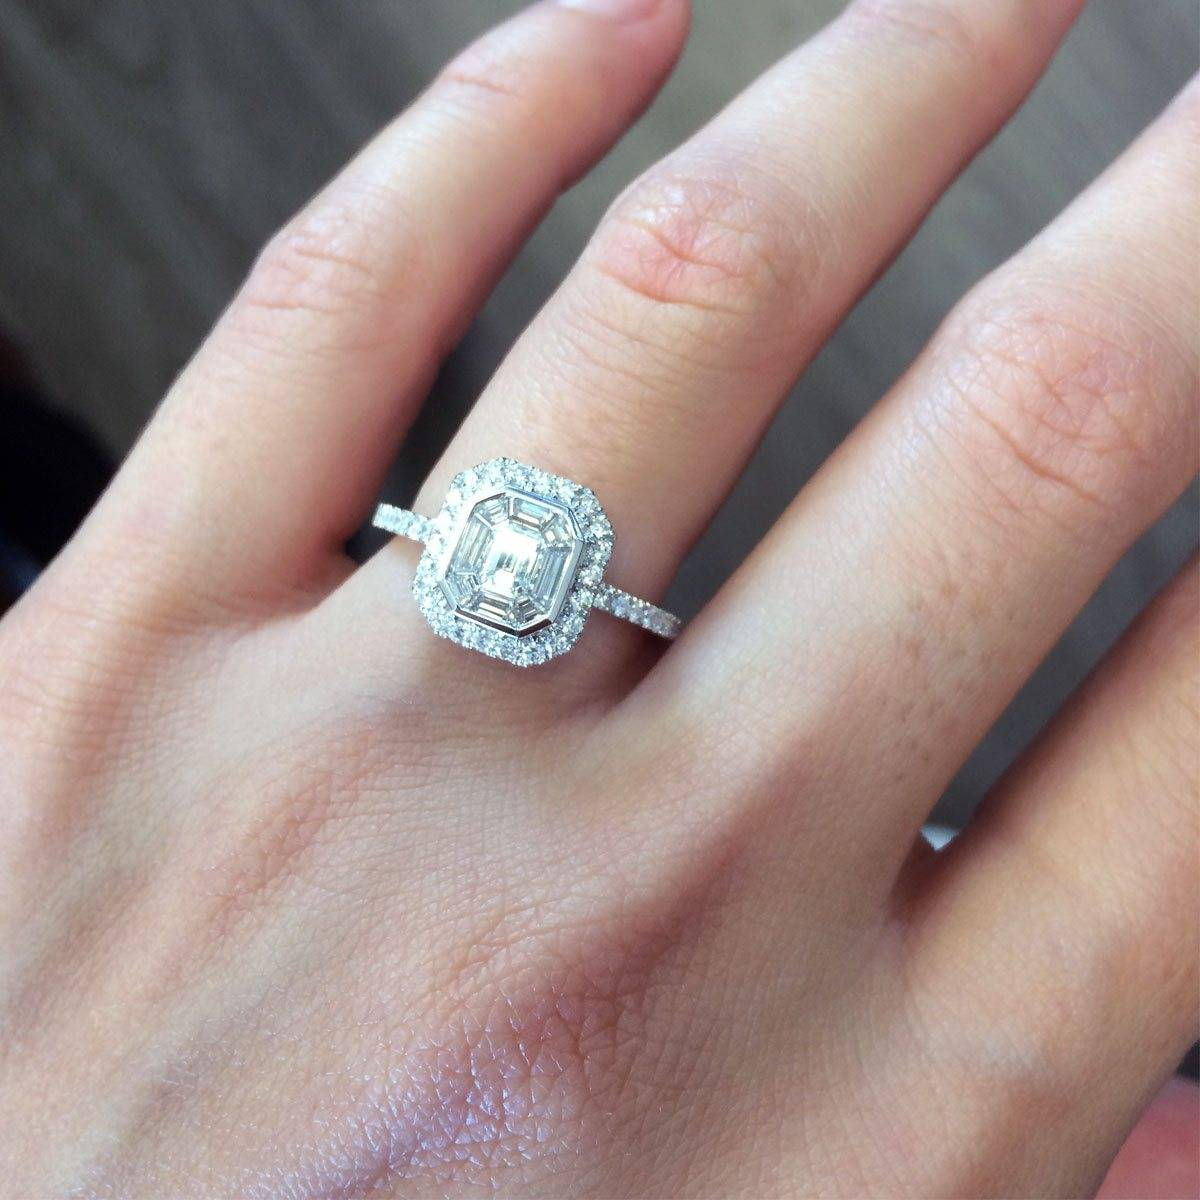 What Does A $ 10000 Engagement Ring Look Like?